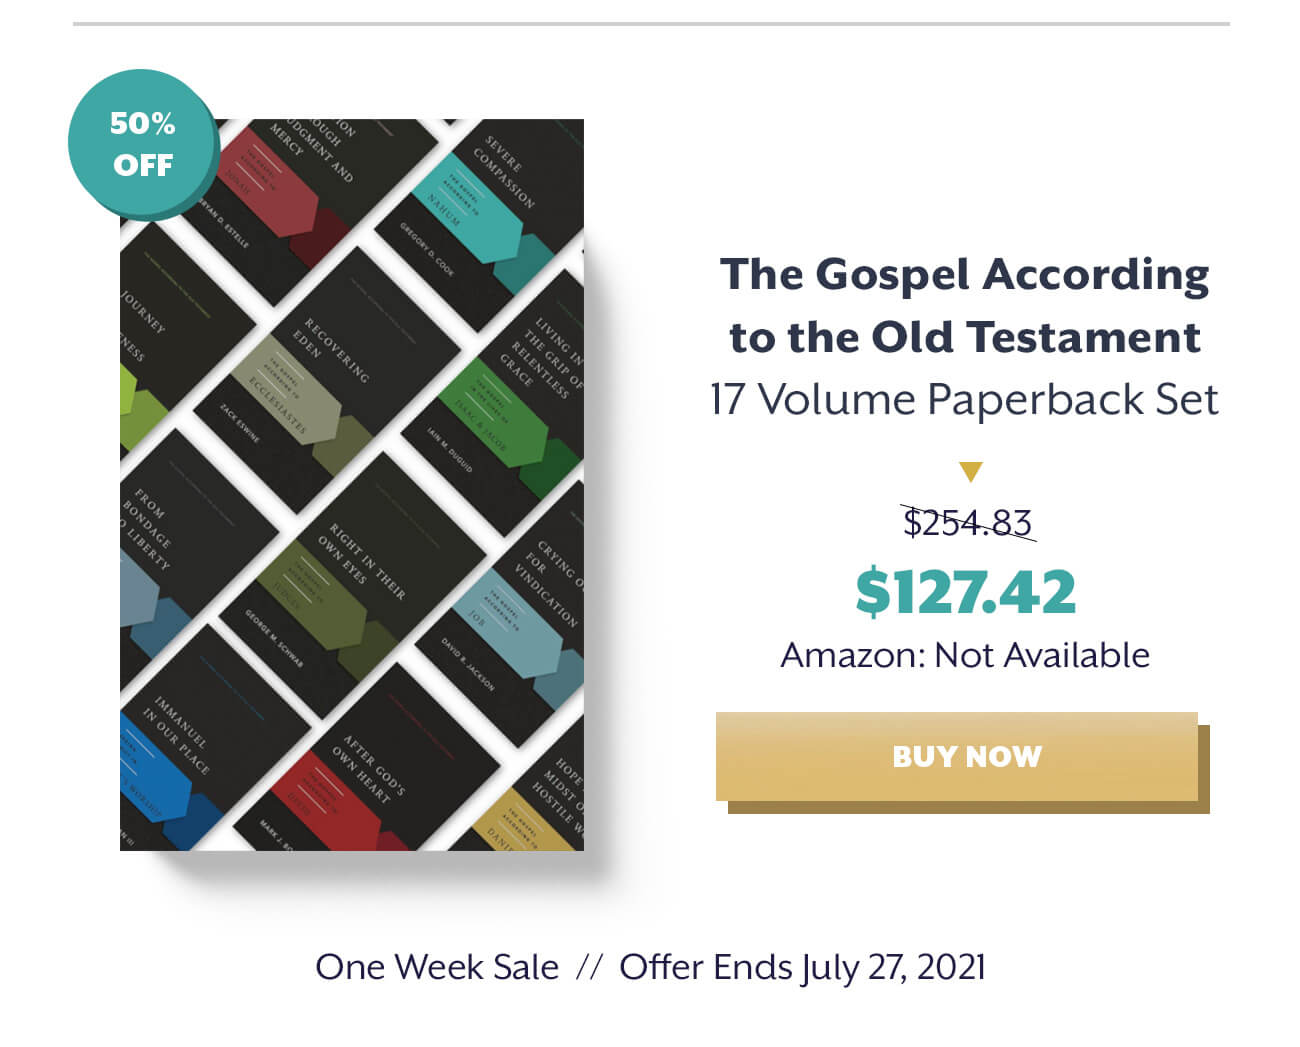 The Gospel According to the Old Testament